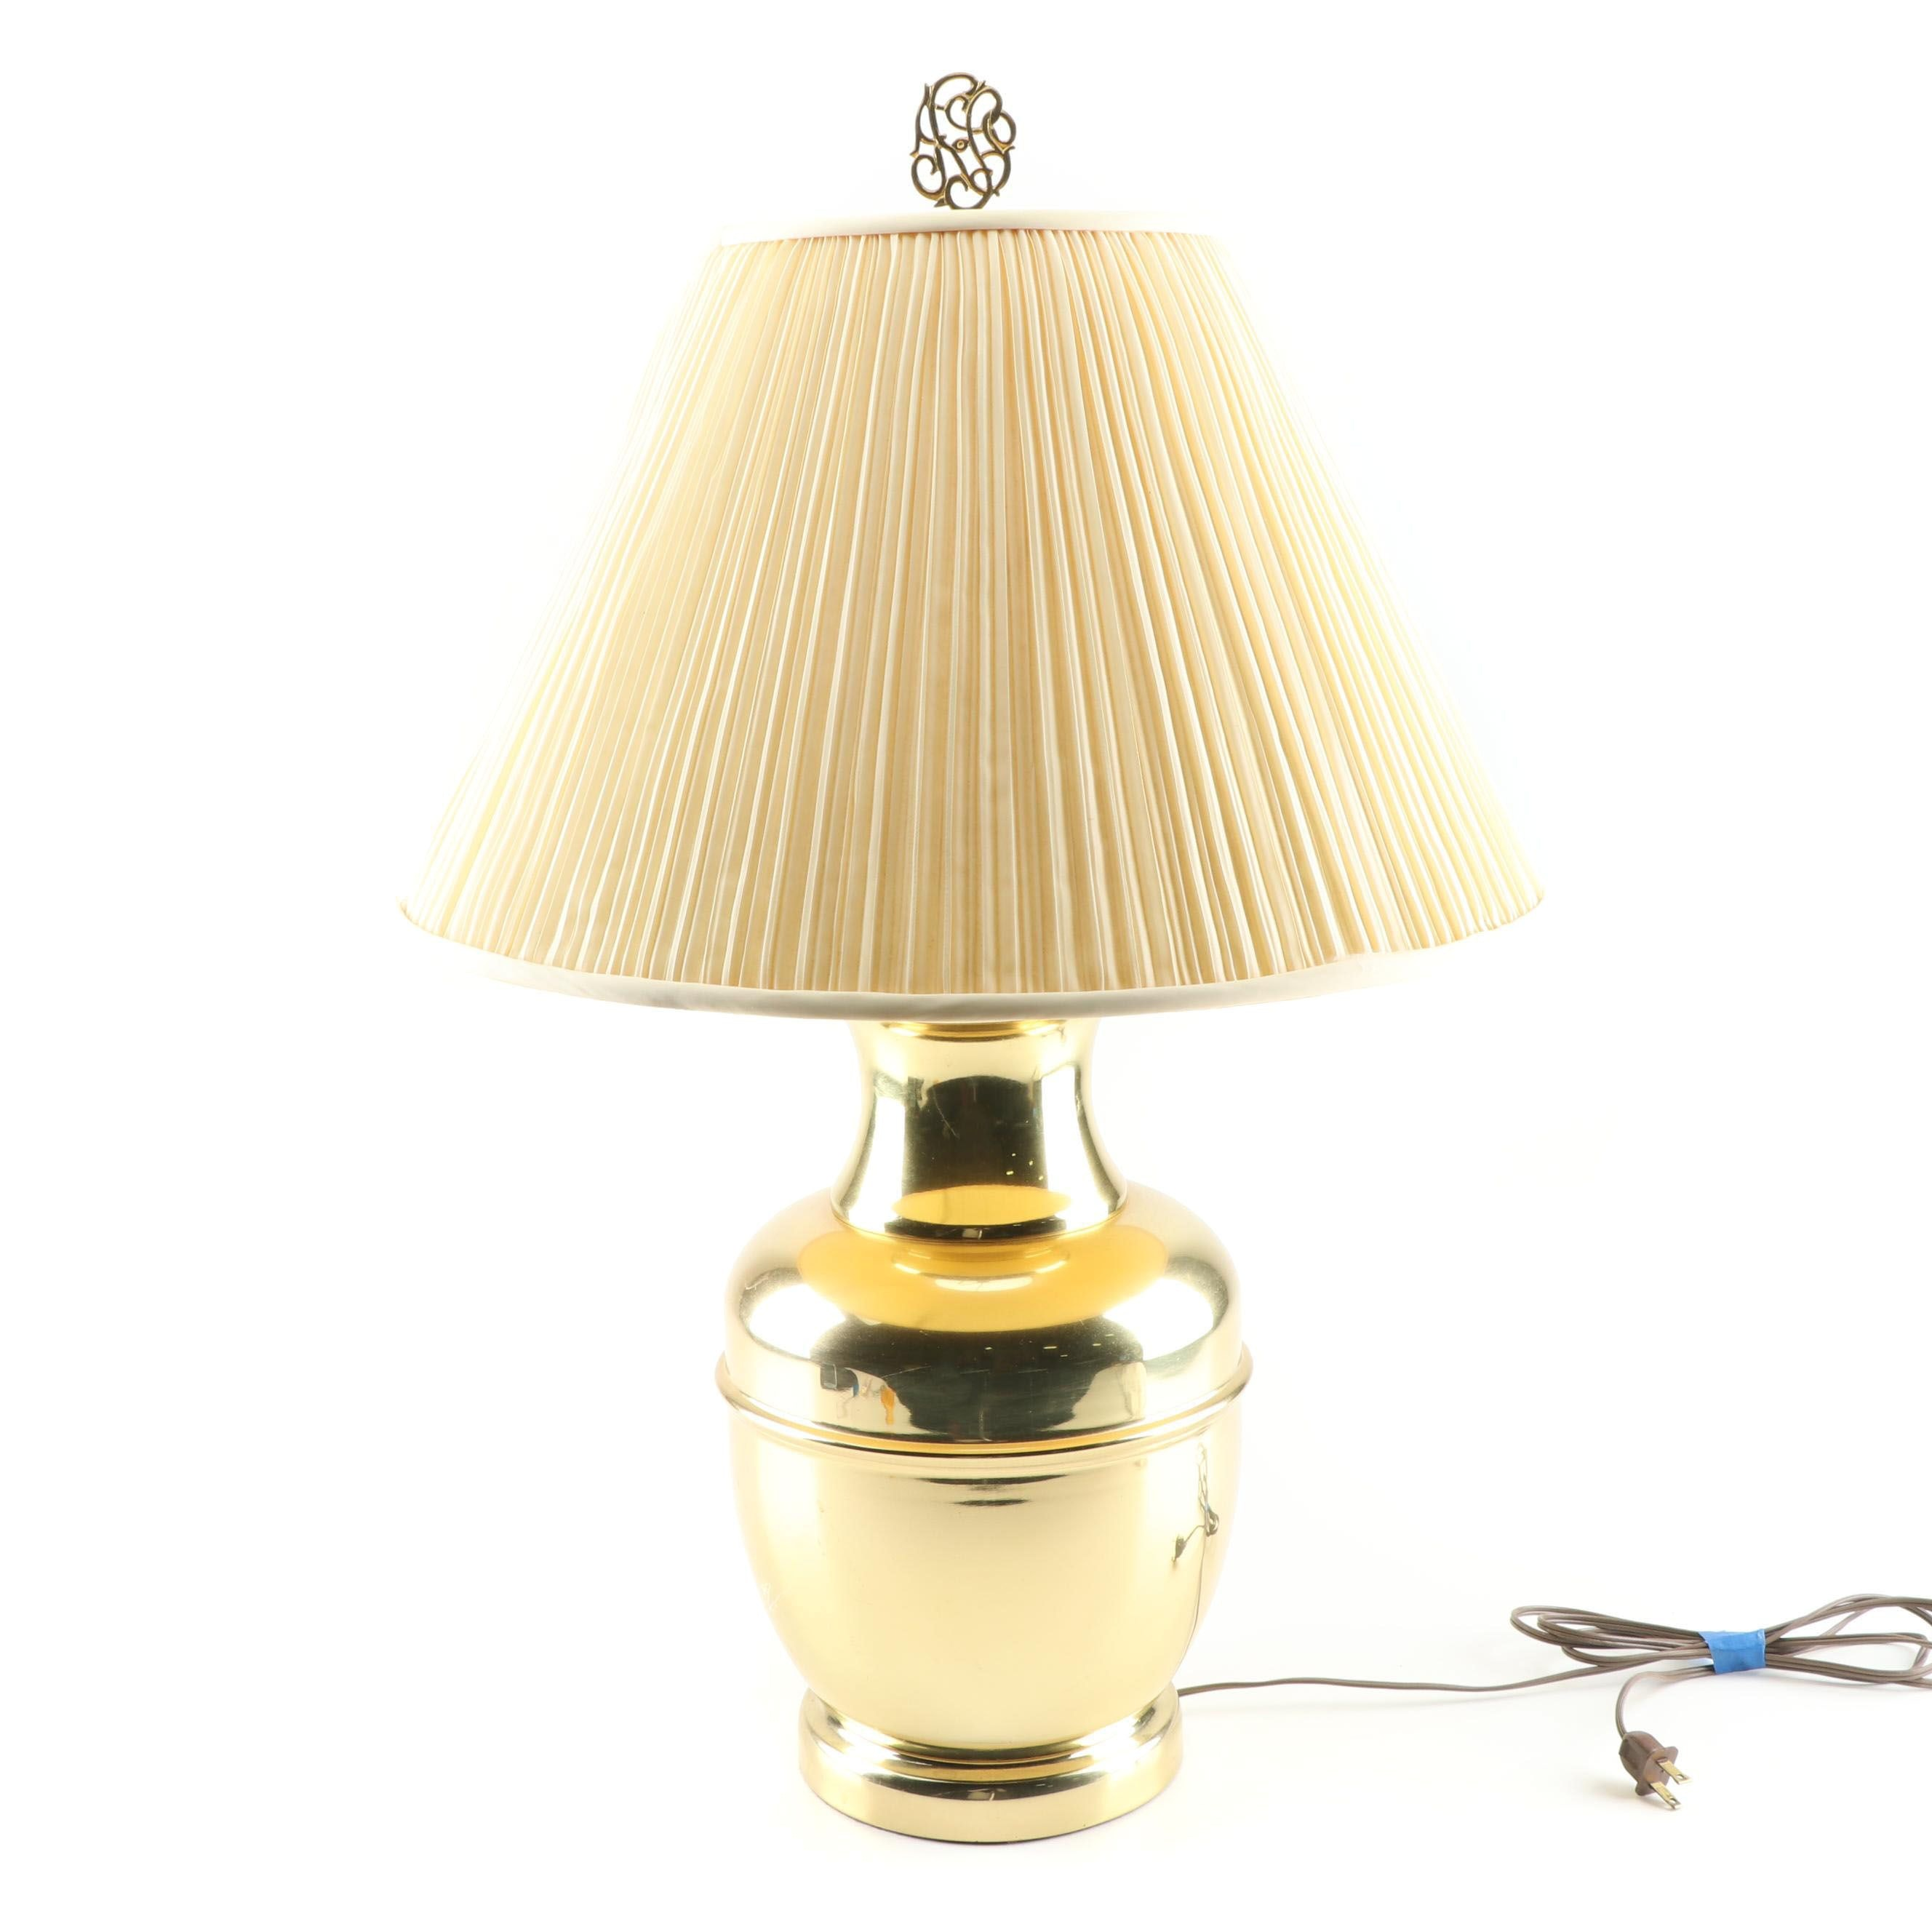 Brass Plate Urn Shaped Table Lamp with Pleated Fabric Shade